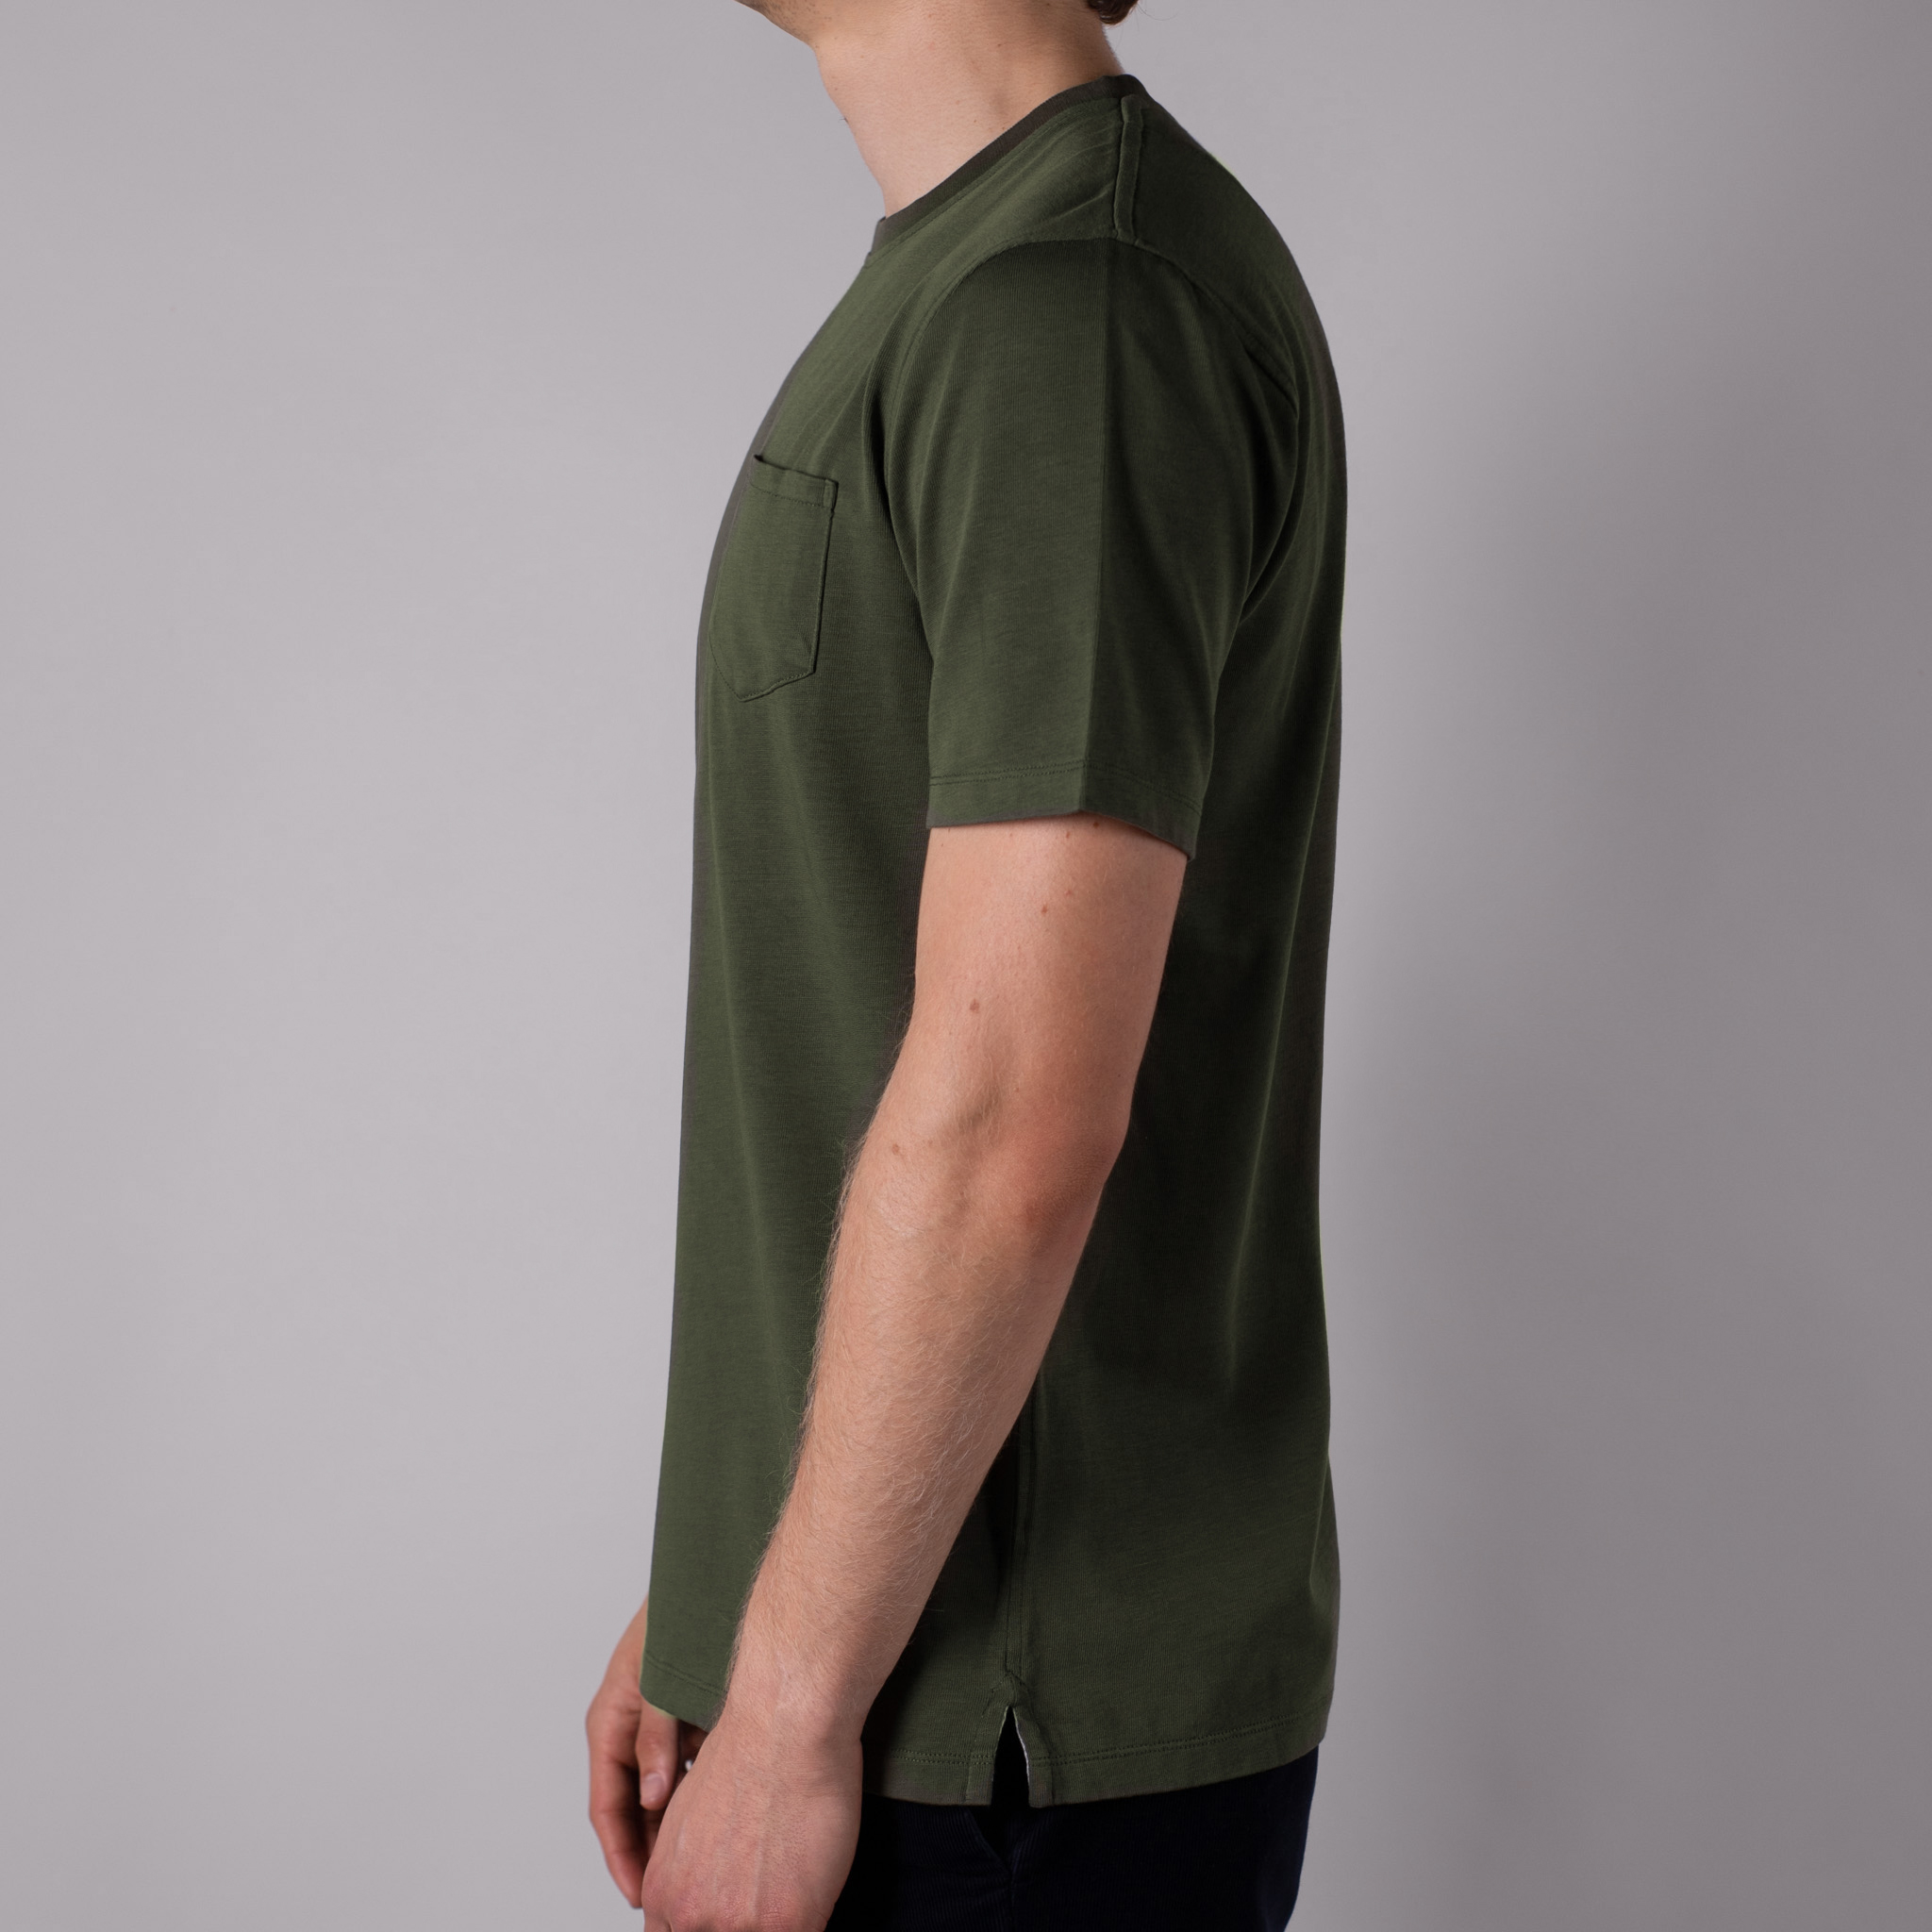 T-SHIRT-02-·-03-VERDE-The-Seëlk 6